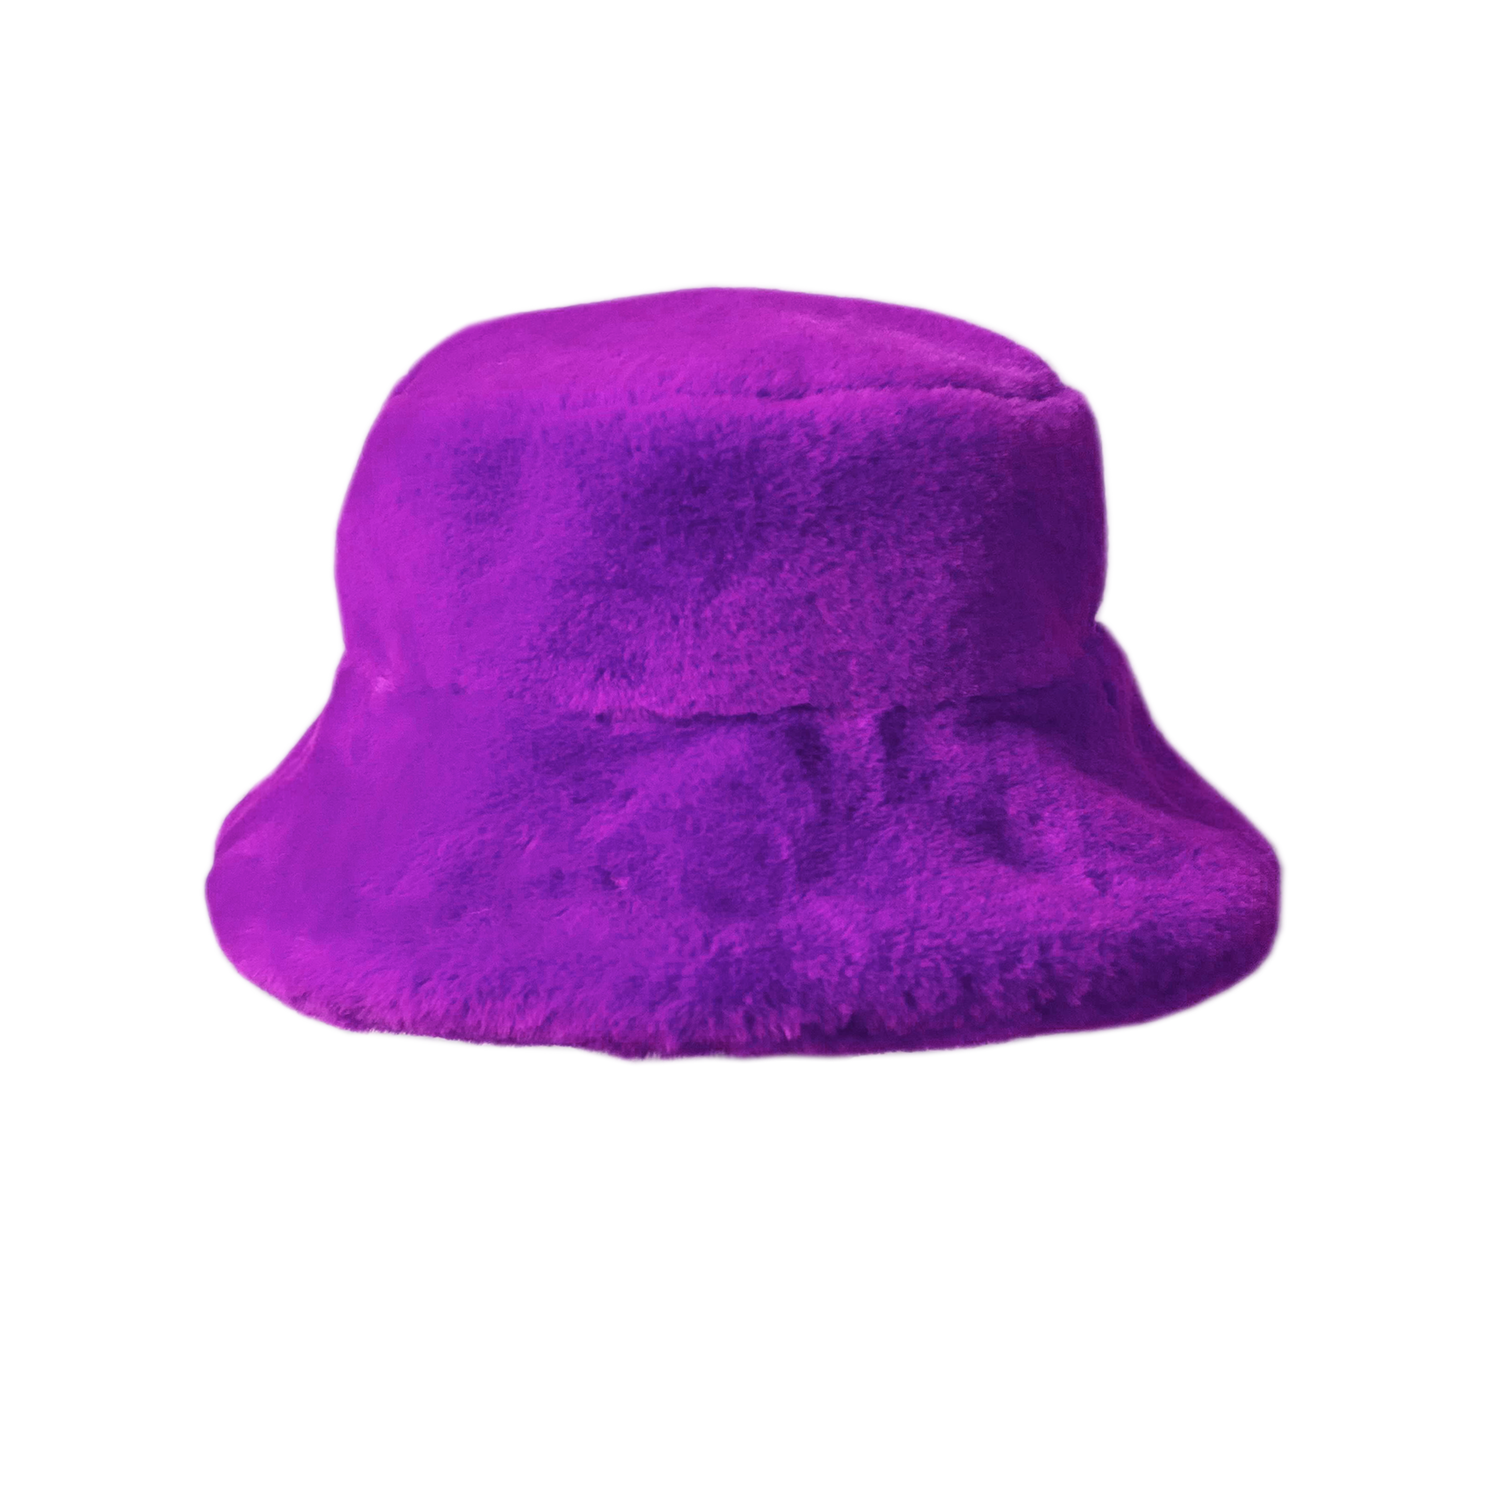 products/buckethat_violet_d7e7c3f6-d553-41d8-b3ee-e07f5fd1b445.png